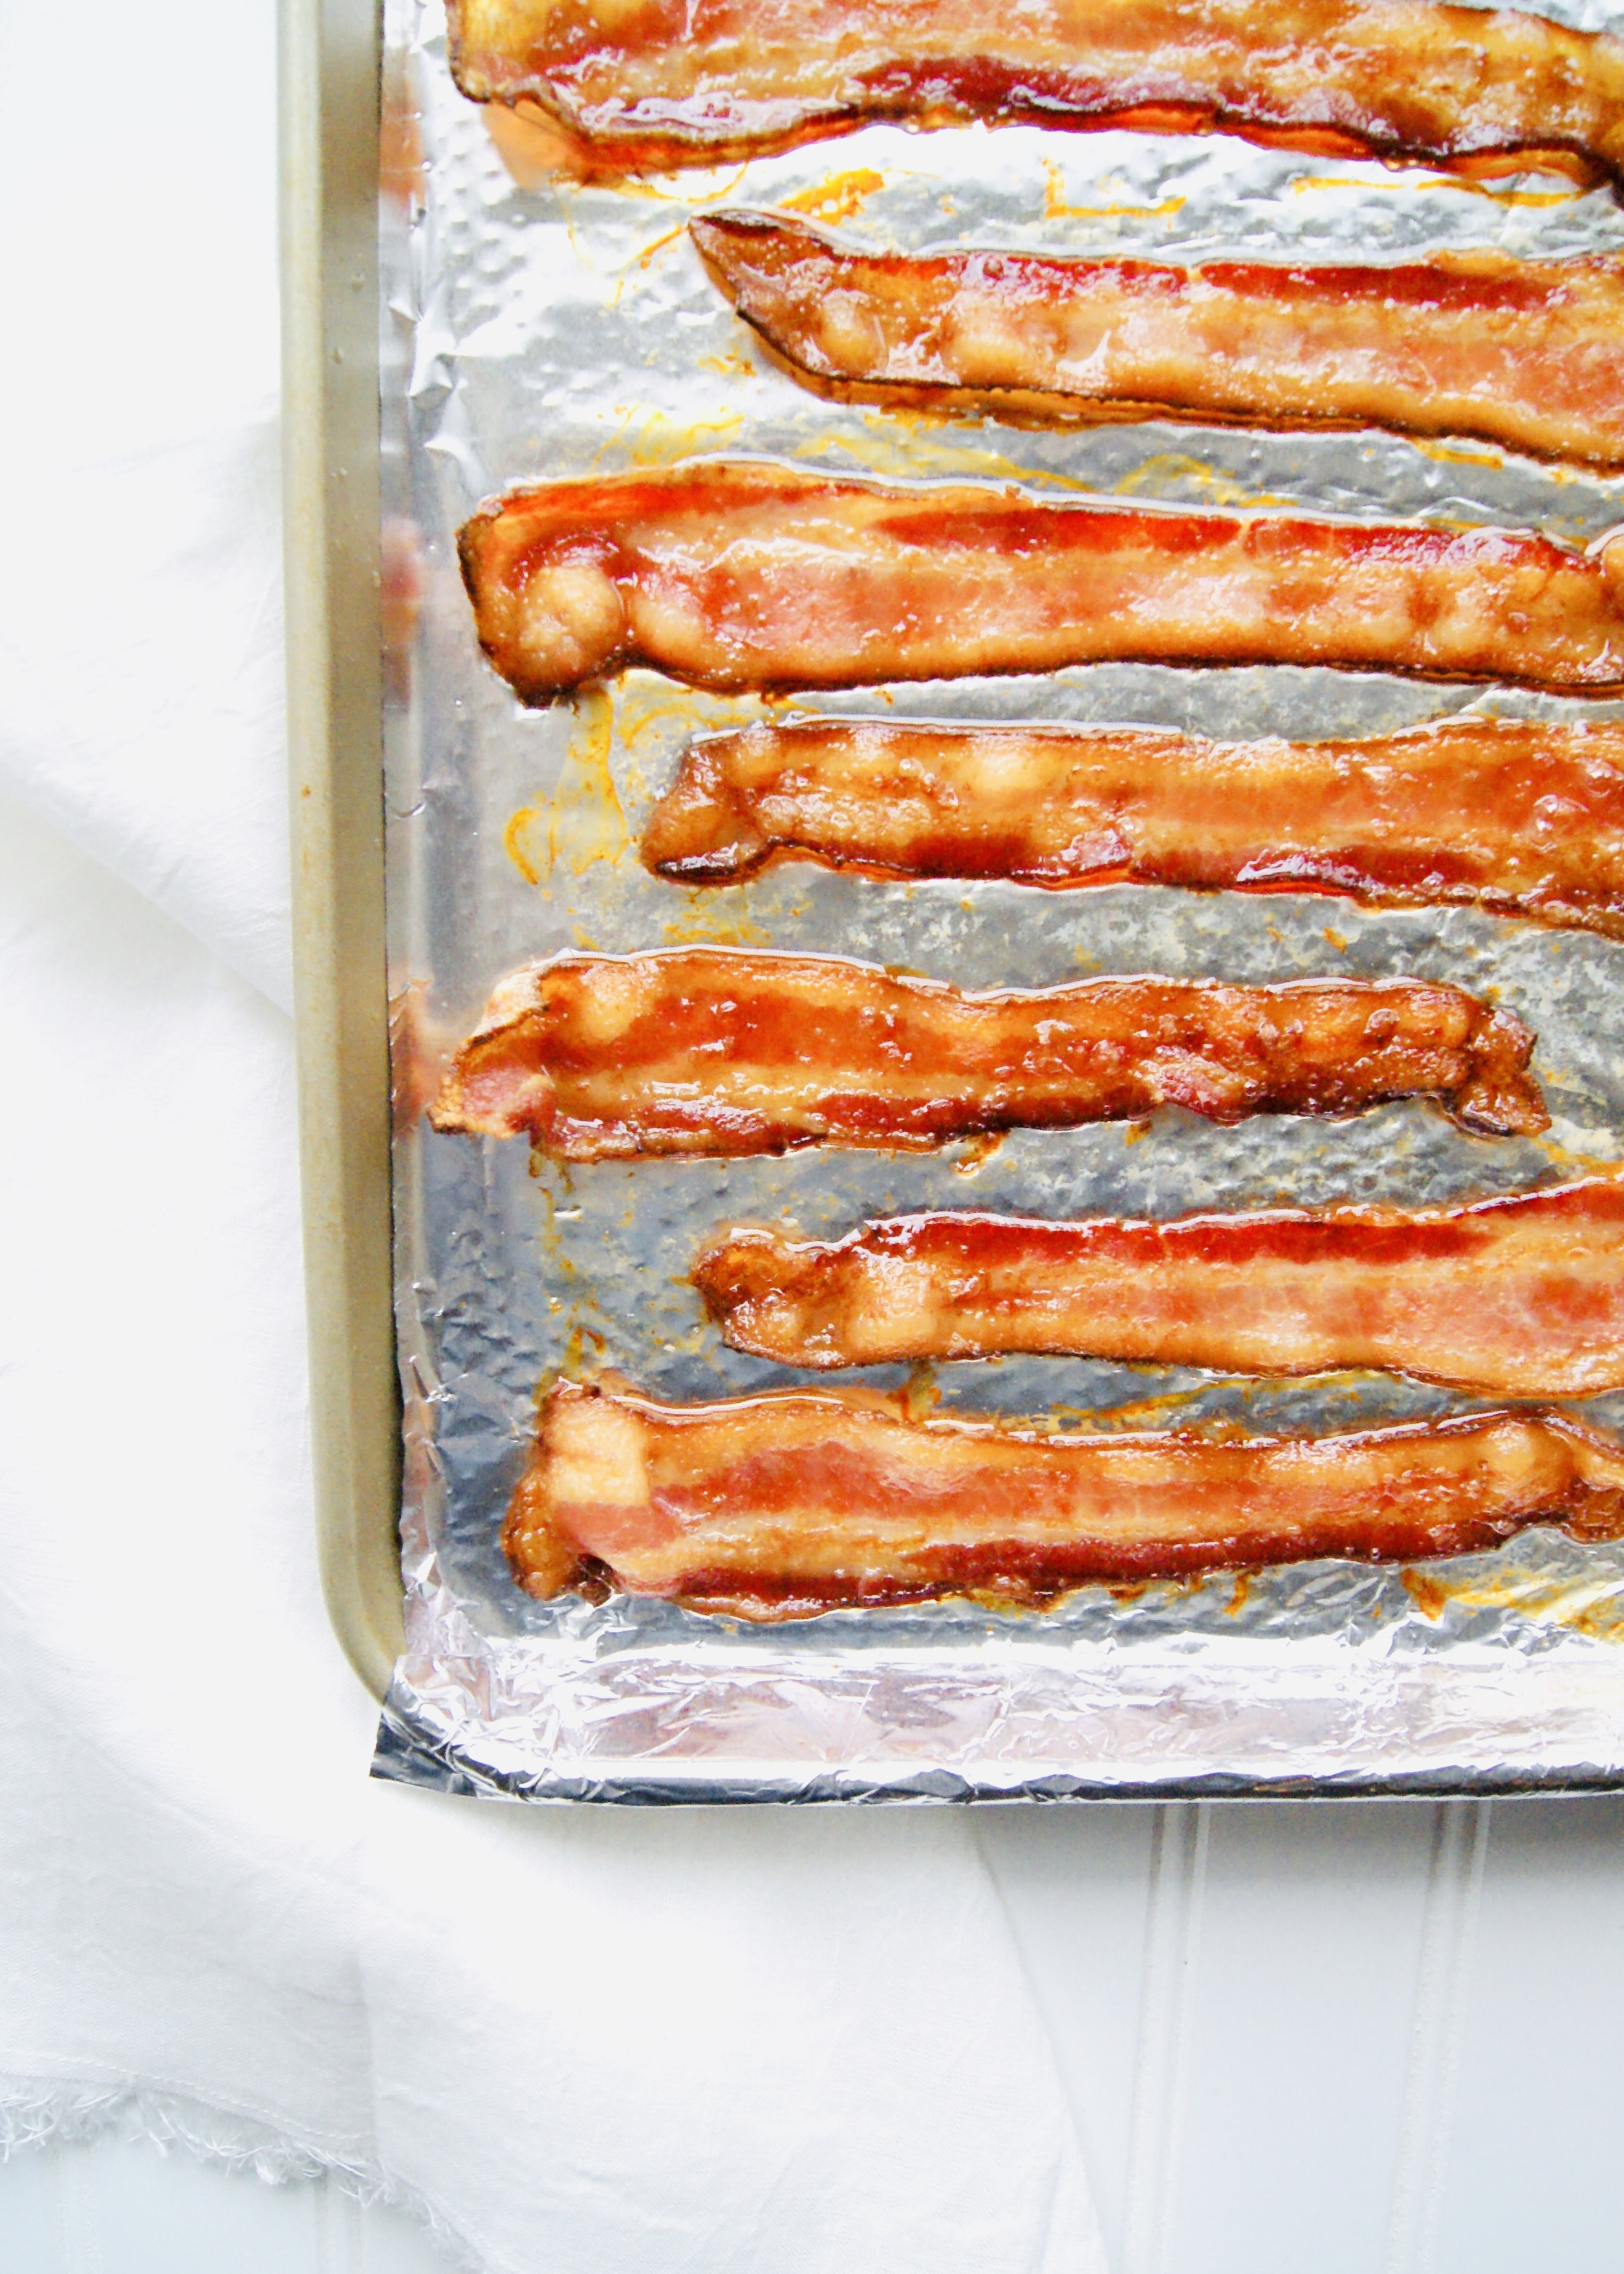 Oven Bacon is quick, easy, and no mess. Cooking bacon in the oven will be your new favorite technique! Recipe at KathleensCravings.com #ovenbacon #bakedbacon #breakfast #brunch #breakfastrecipes #baconrecipe